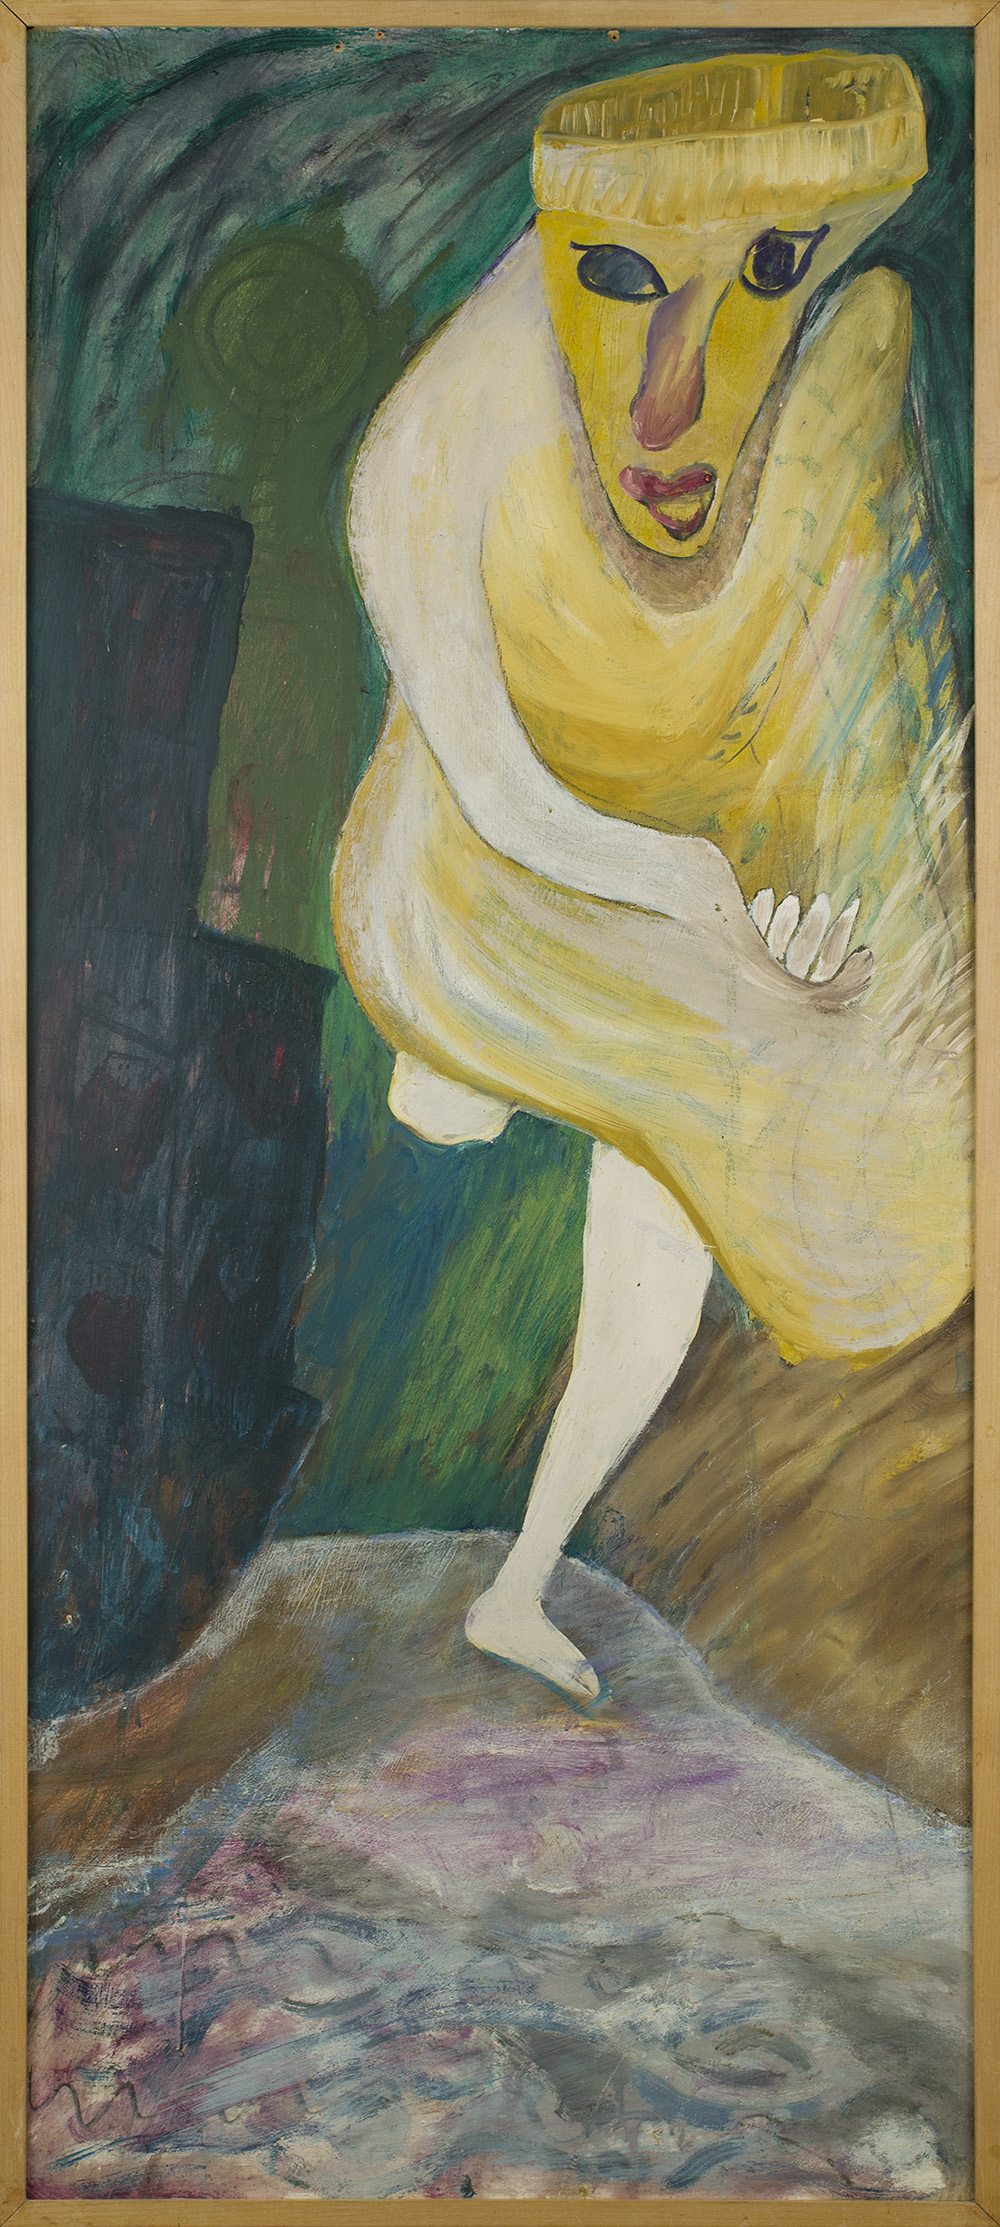 Jon Serl    Woman Chasing Purse Snatcher  , n.d. Oil on canvas 47.5 x 20.5 inches 120.7 x 52.1 cm SJ 493